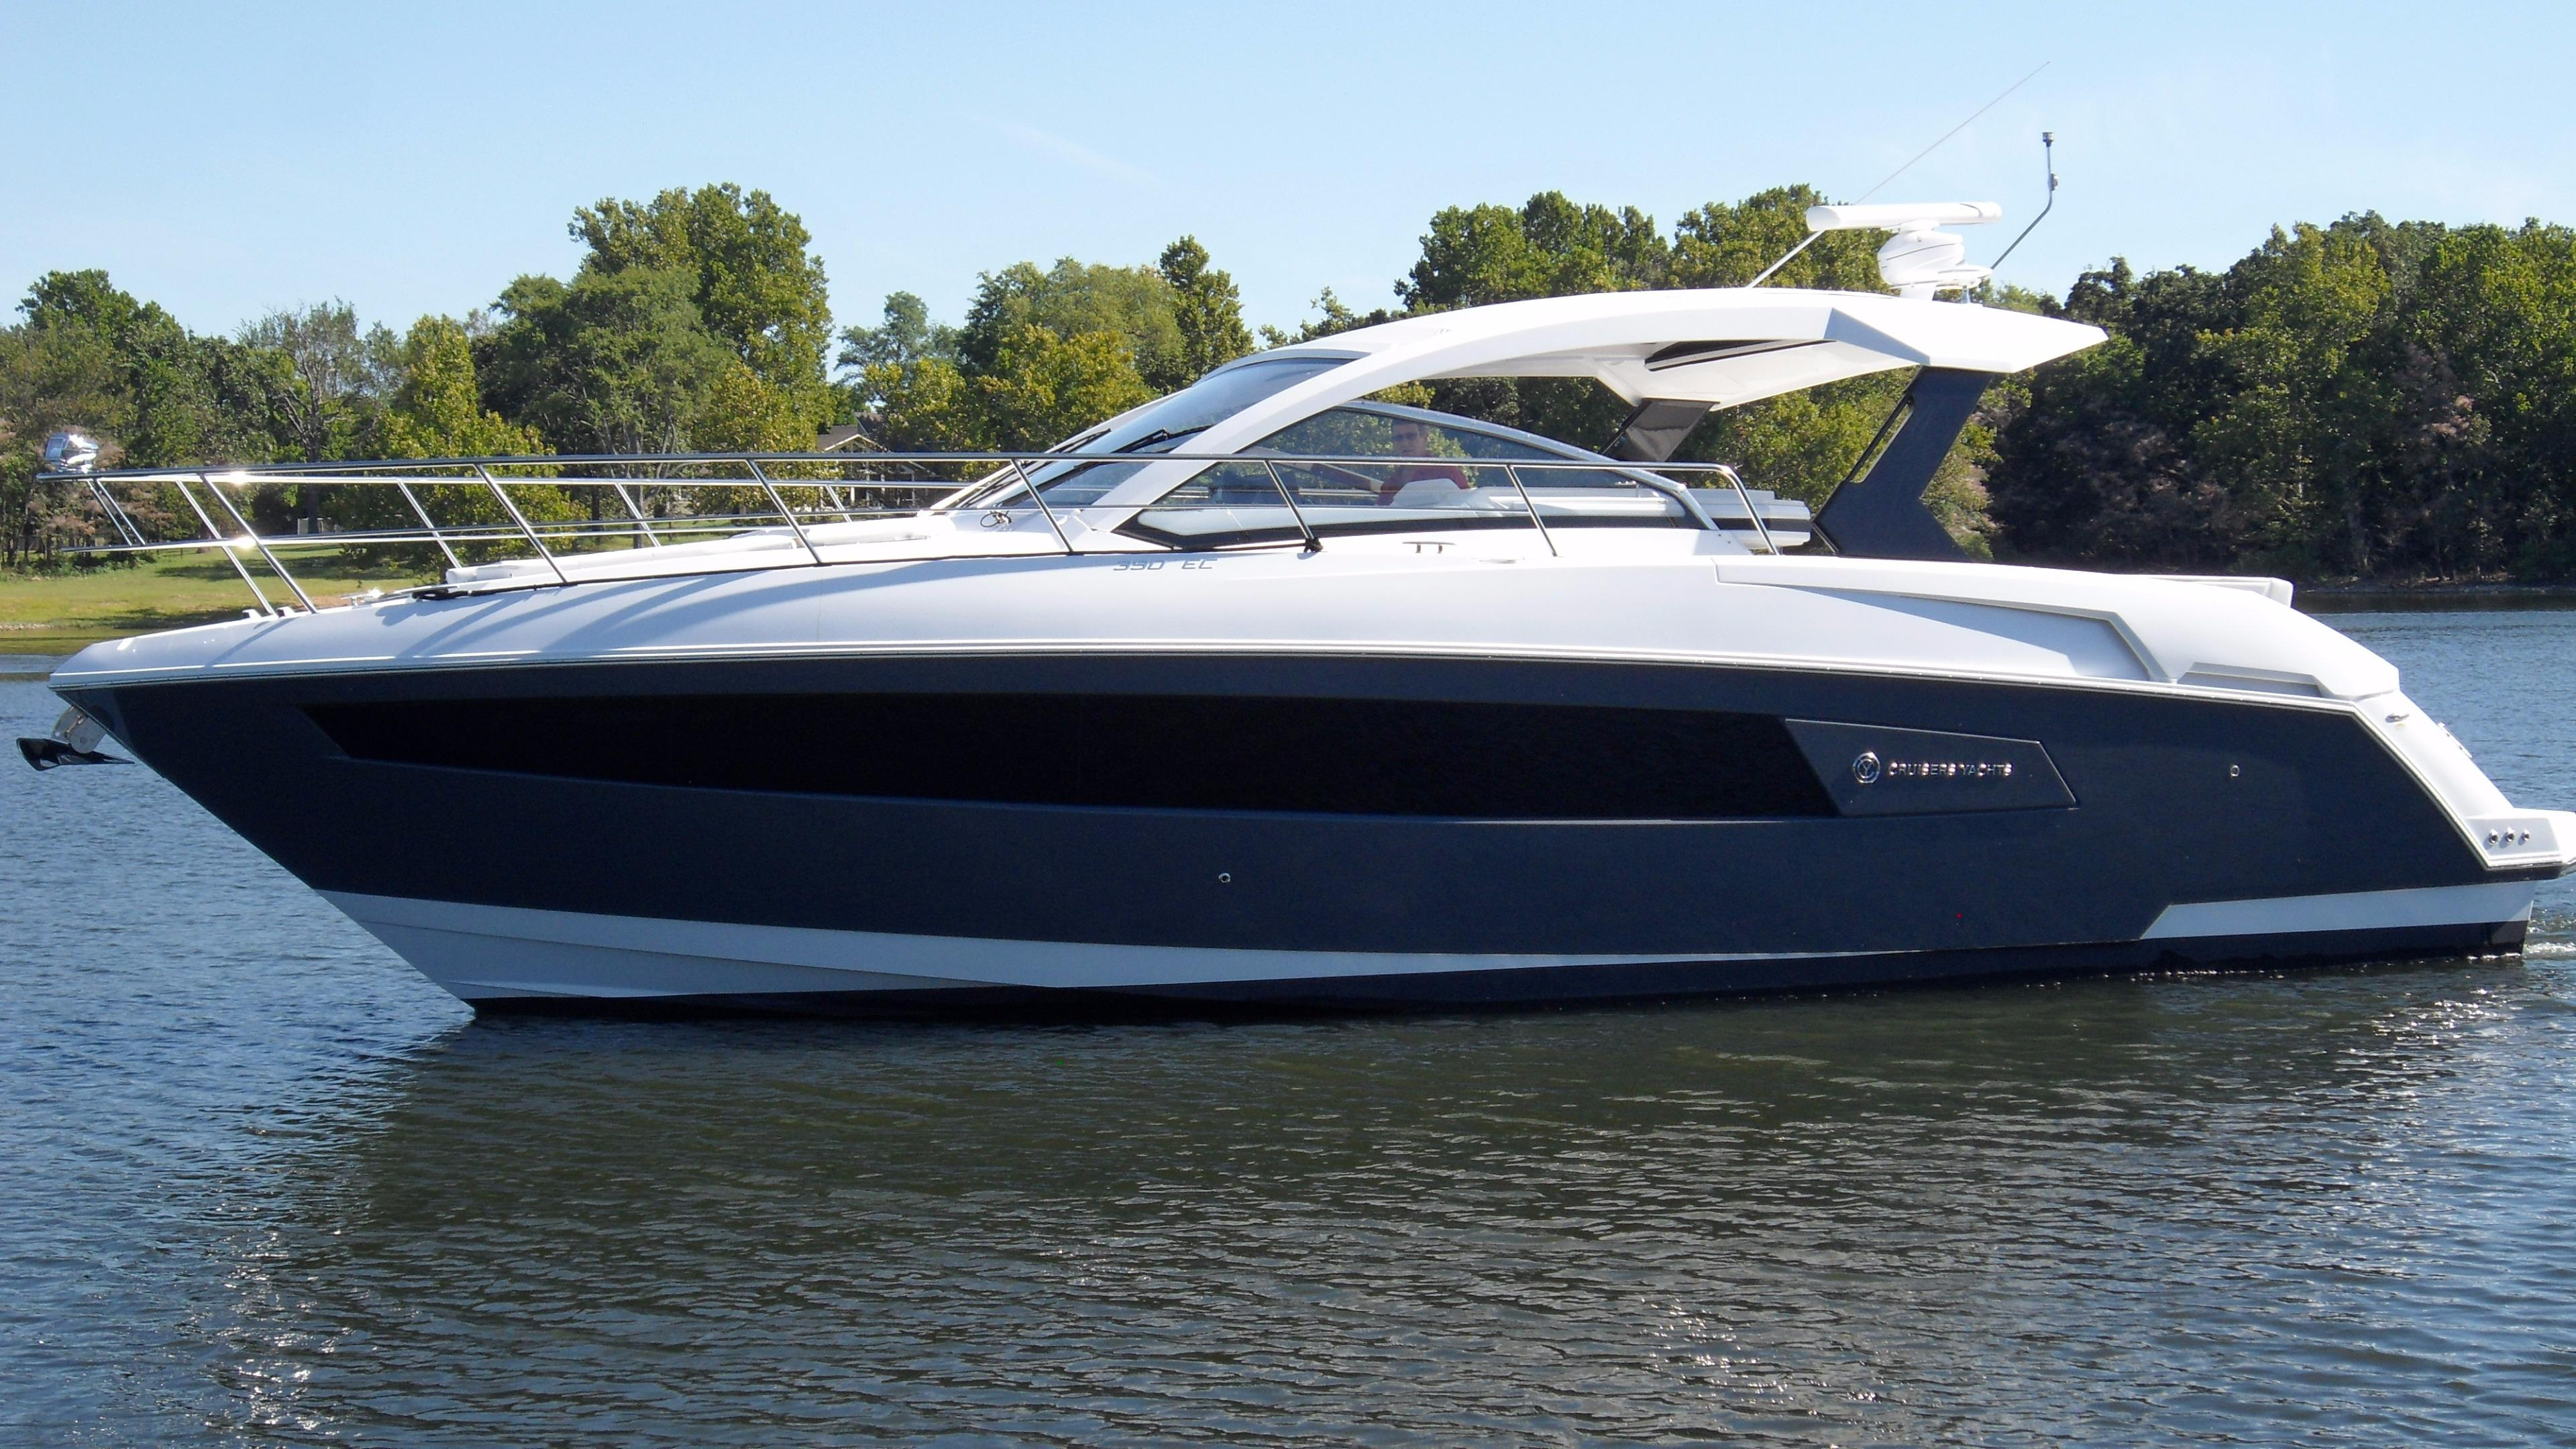 2016 Cruisers Yachts 390 Express Coupe Power Boat For Sale Wwwyachtworldcom